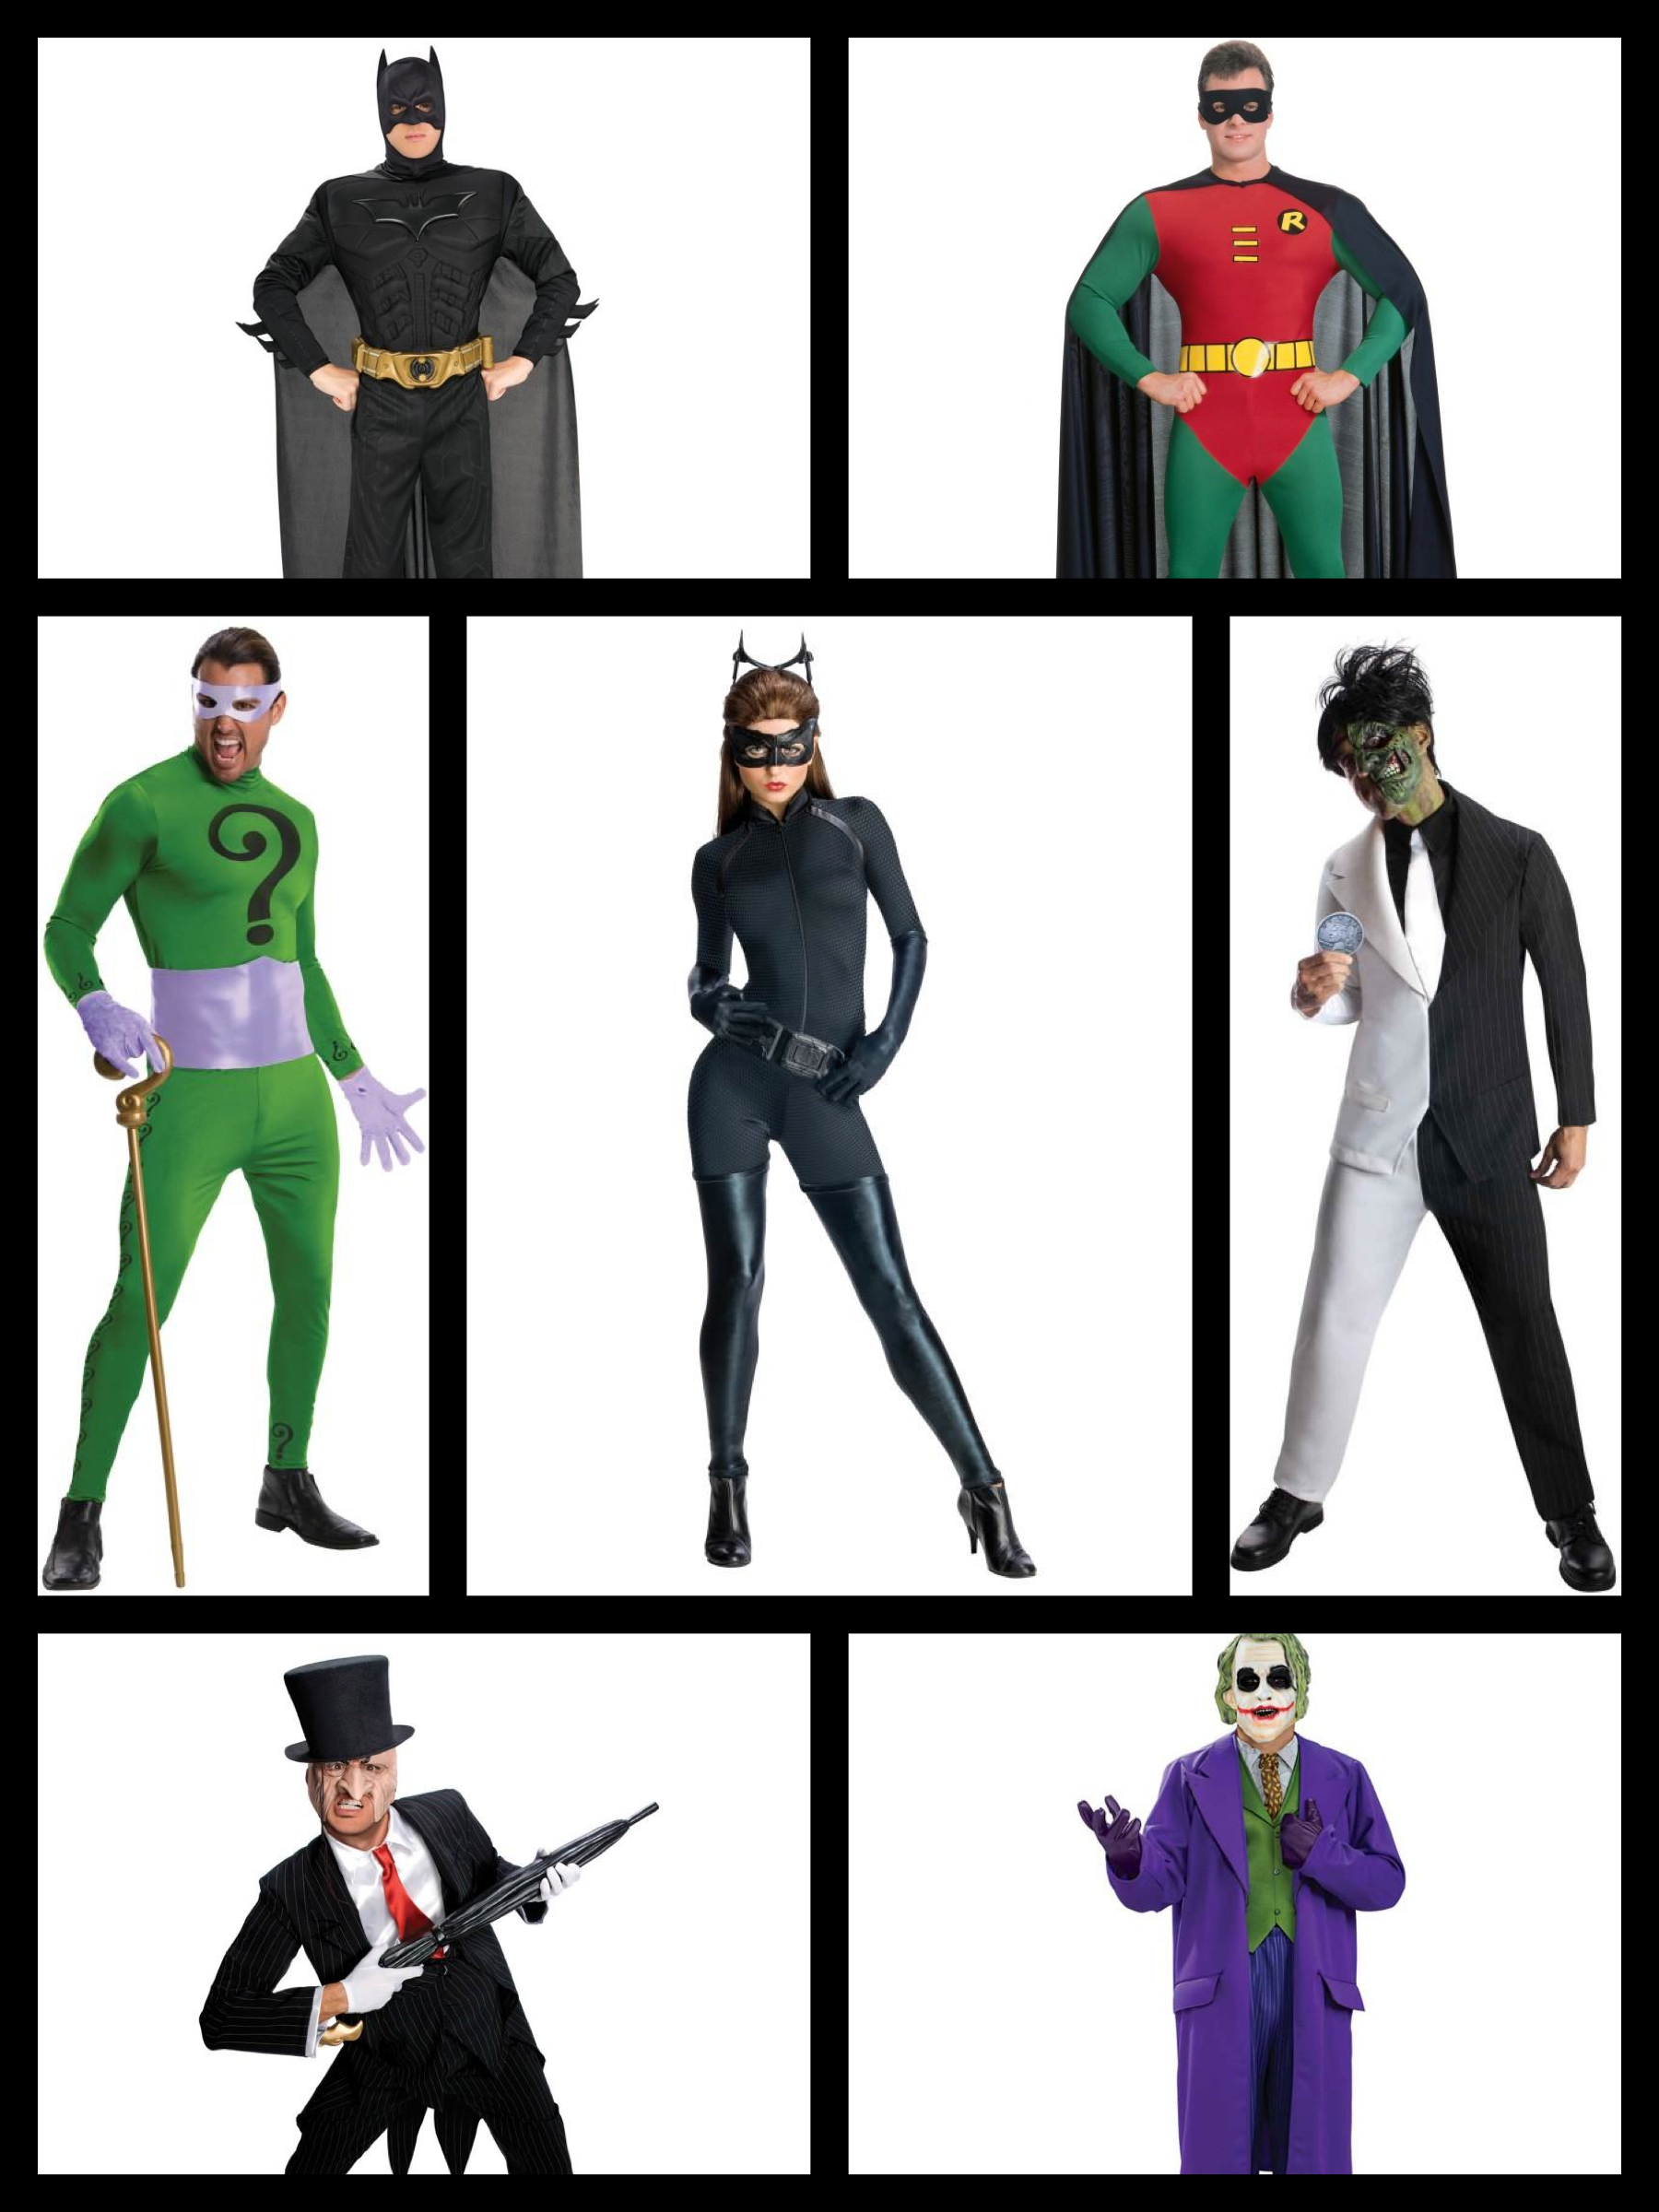 Catwoman Couples Costume Ideas